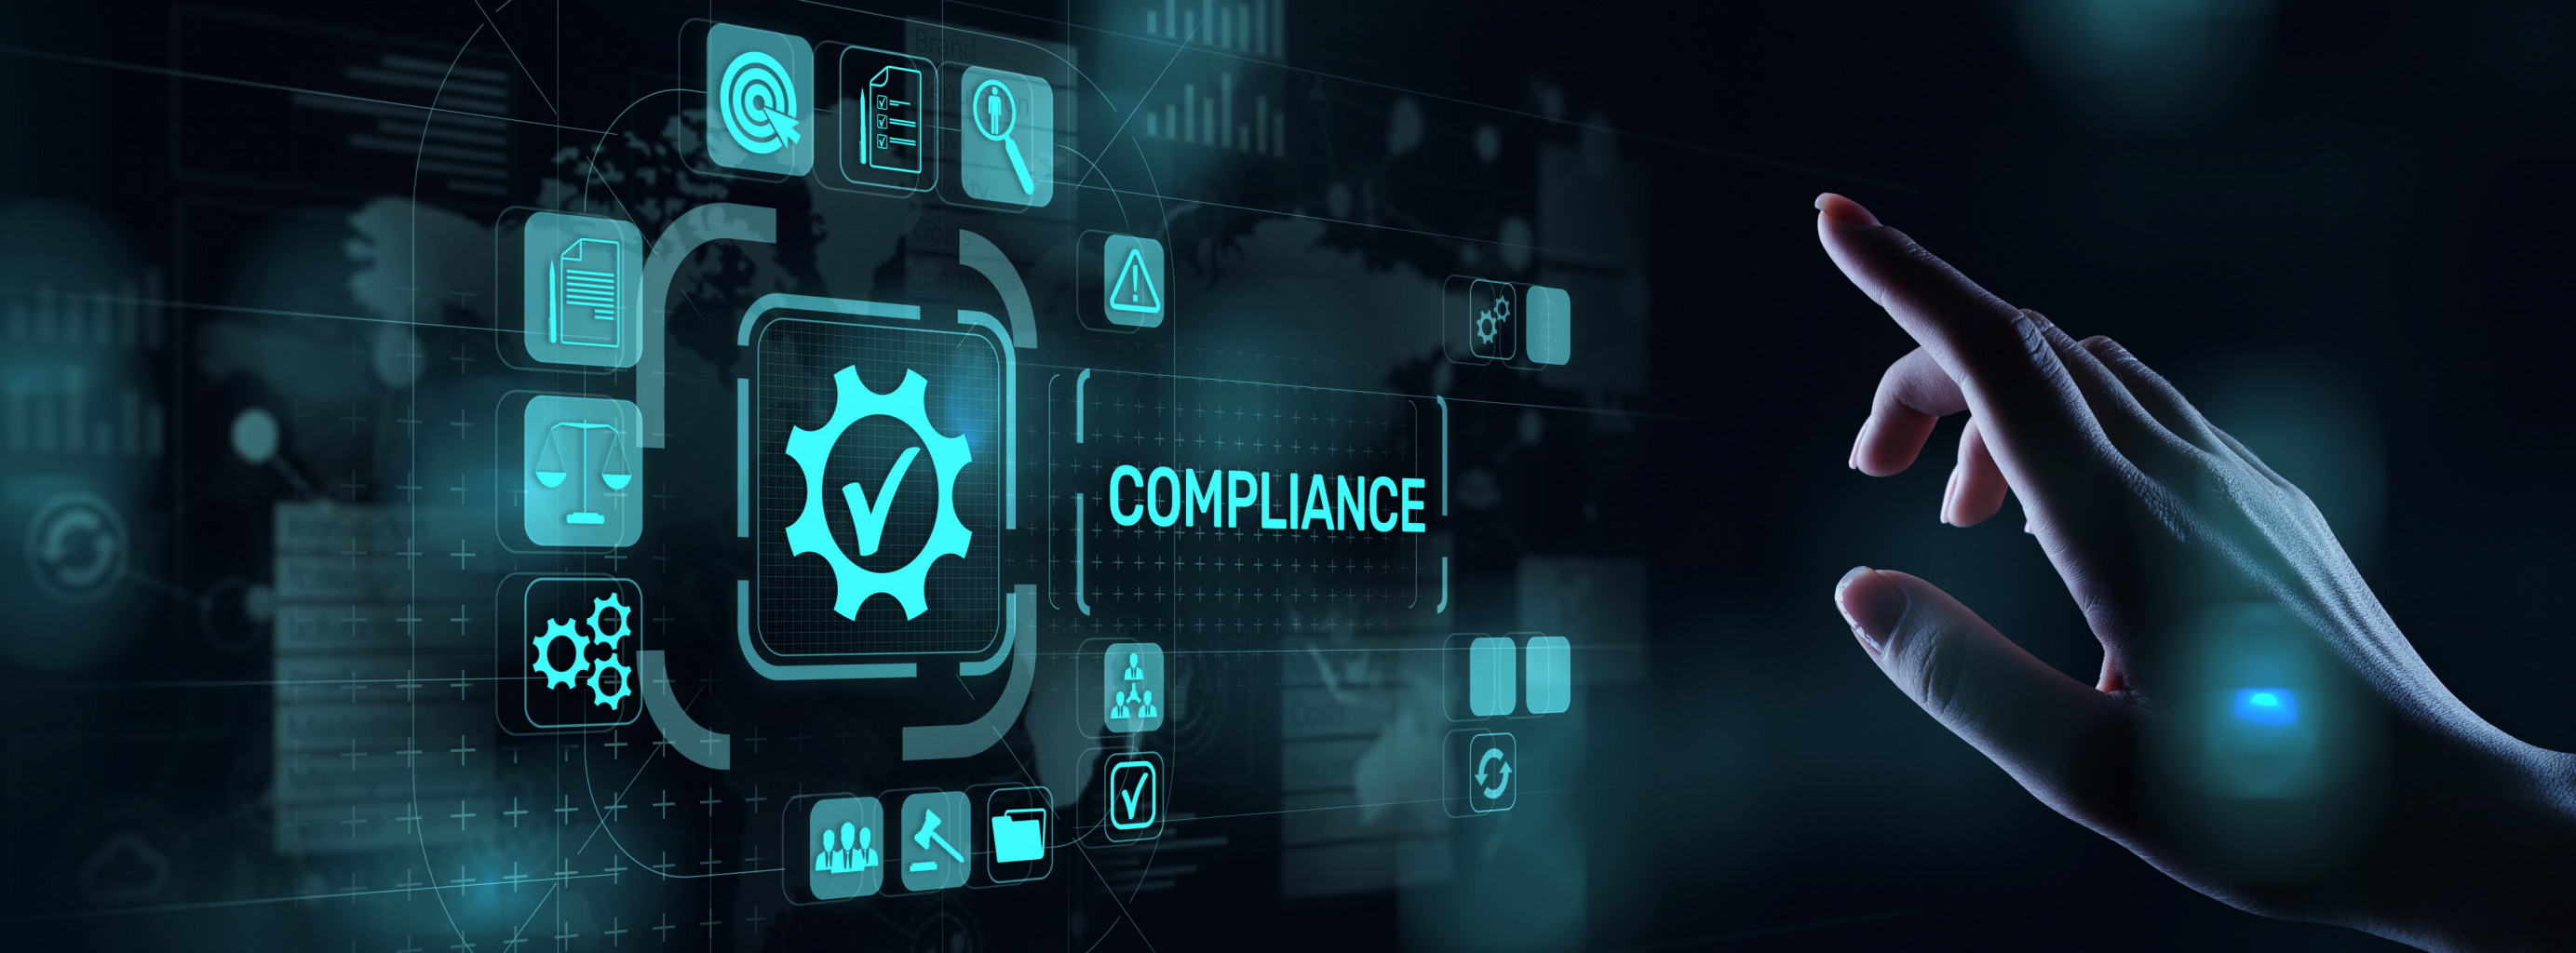 Compliance policies for different industries